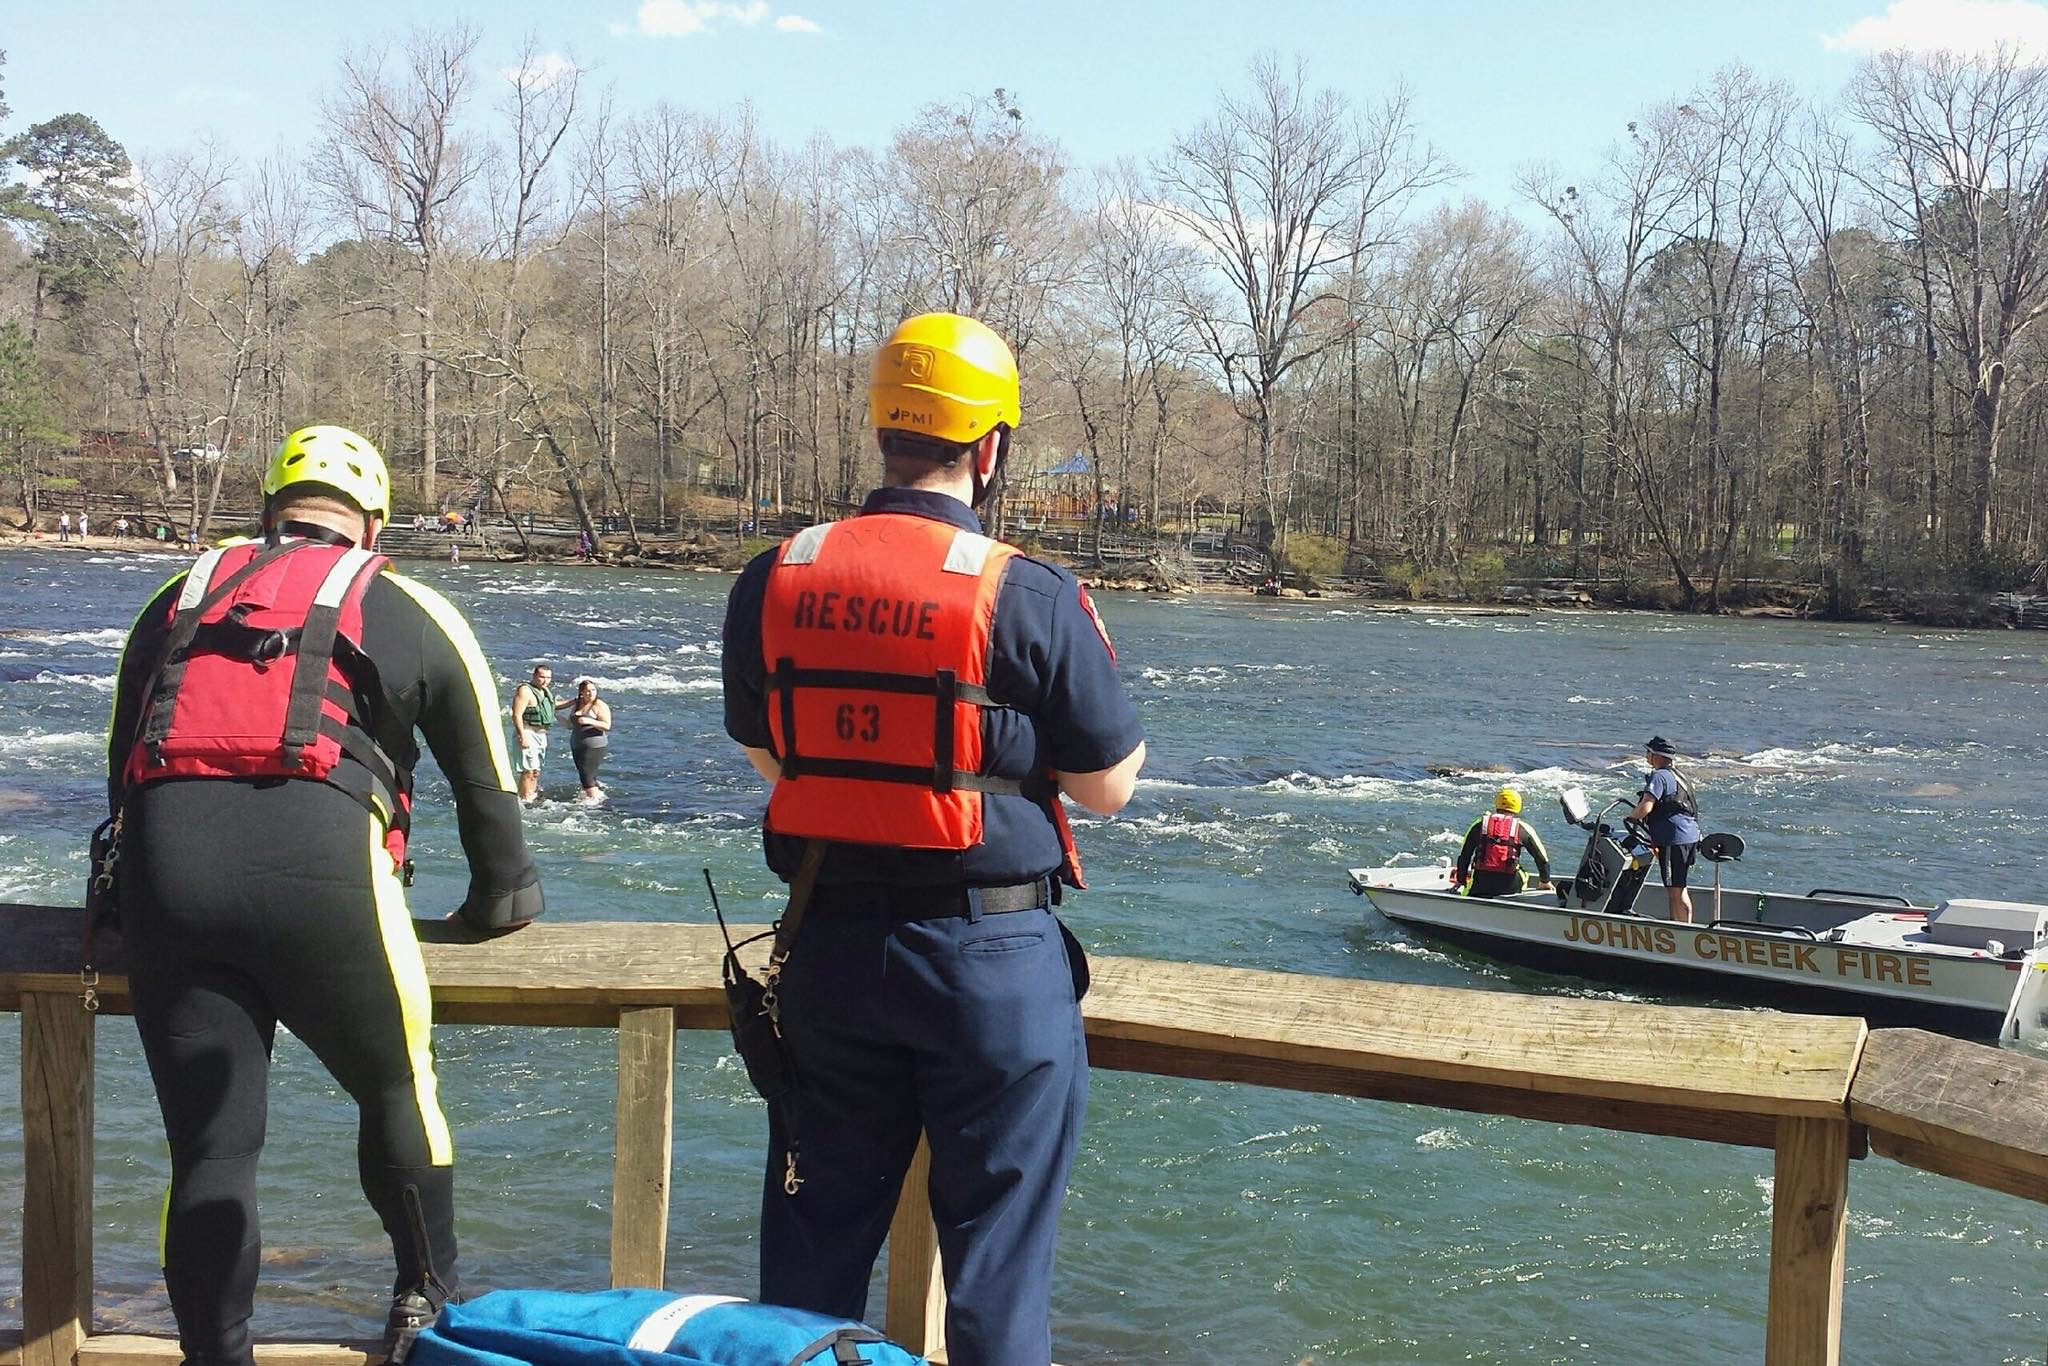 A man and woman were rescued by the Johns Creek Fire Department after they lost their canoe and became stranded in the Chattahoochee River at the Chattahoochee National Recreation Area in Johns Creek, Georgia. Credit:  Candra Umunna